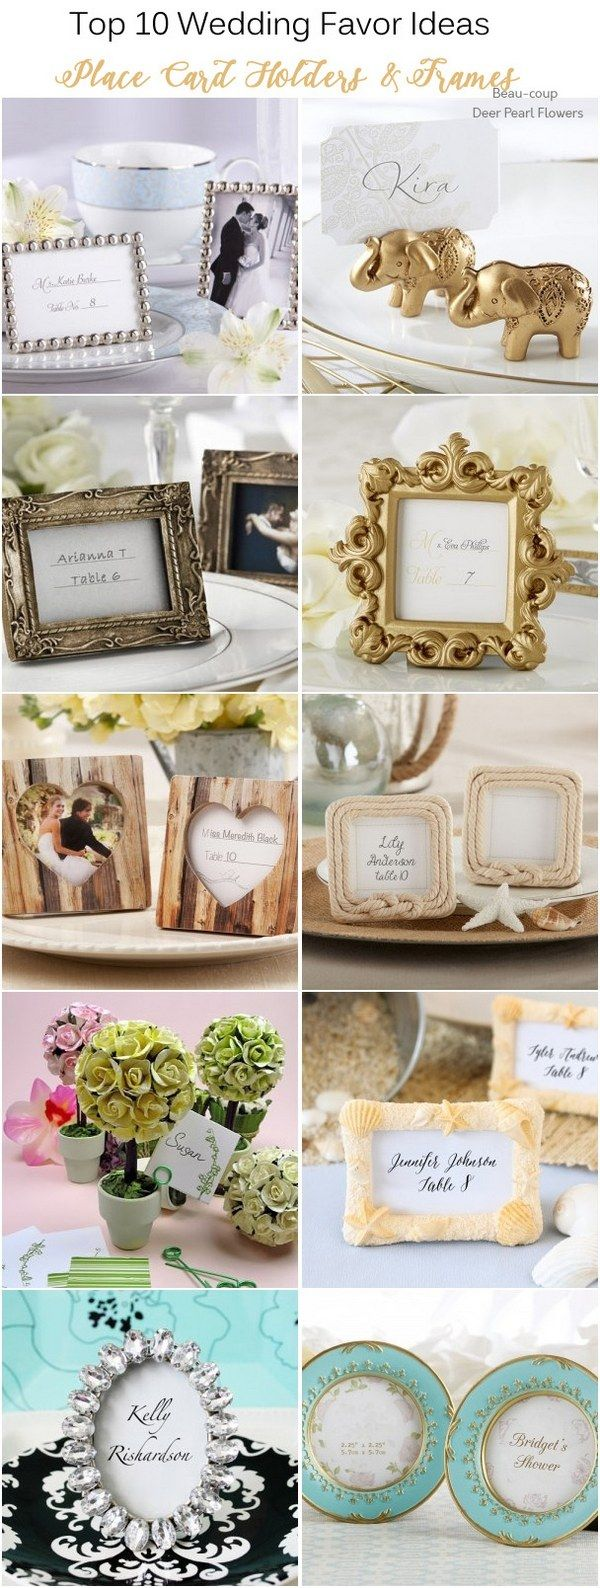 silver heart wedding place card holders%0A Top    Wedding Favor Ideas that Your Guests Will Actually Like  Wedding  Place Card HoldersWedding